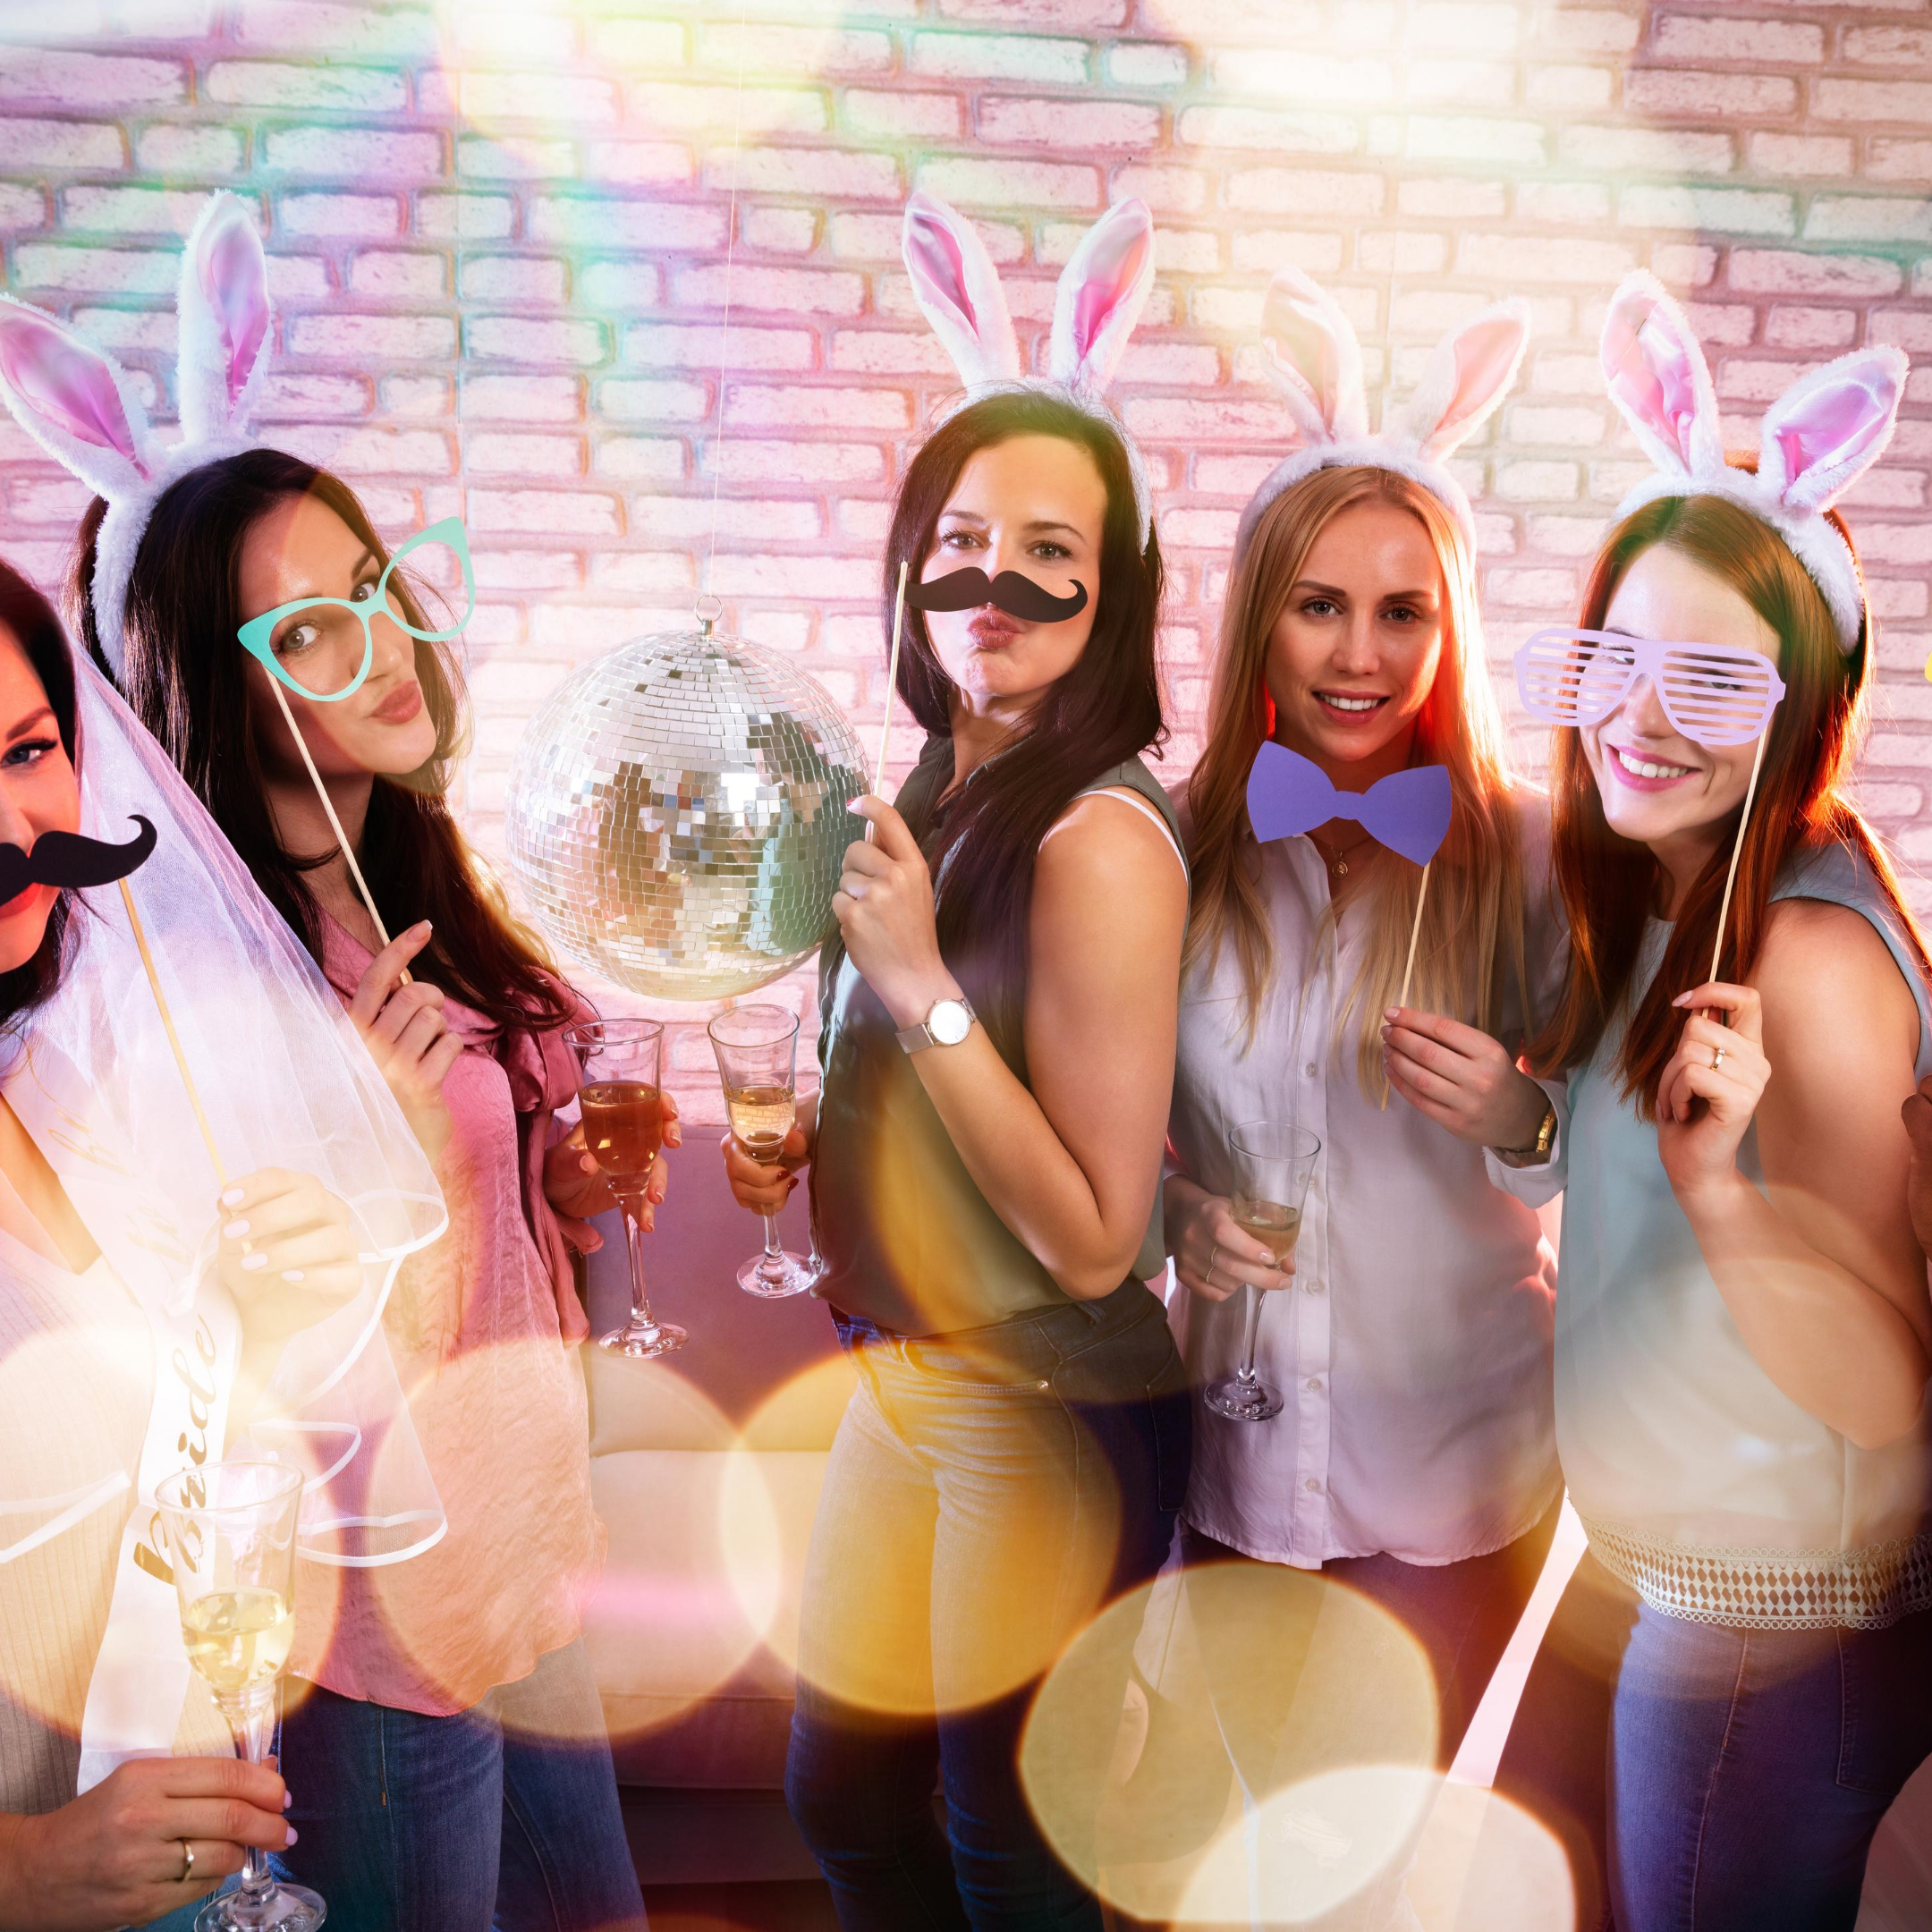 go blue tours how to plan the Ultimate Bachelorette Party